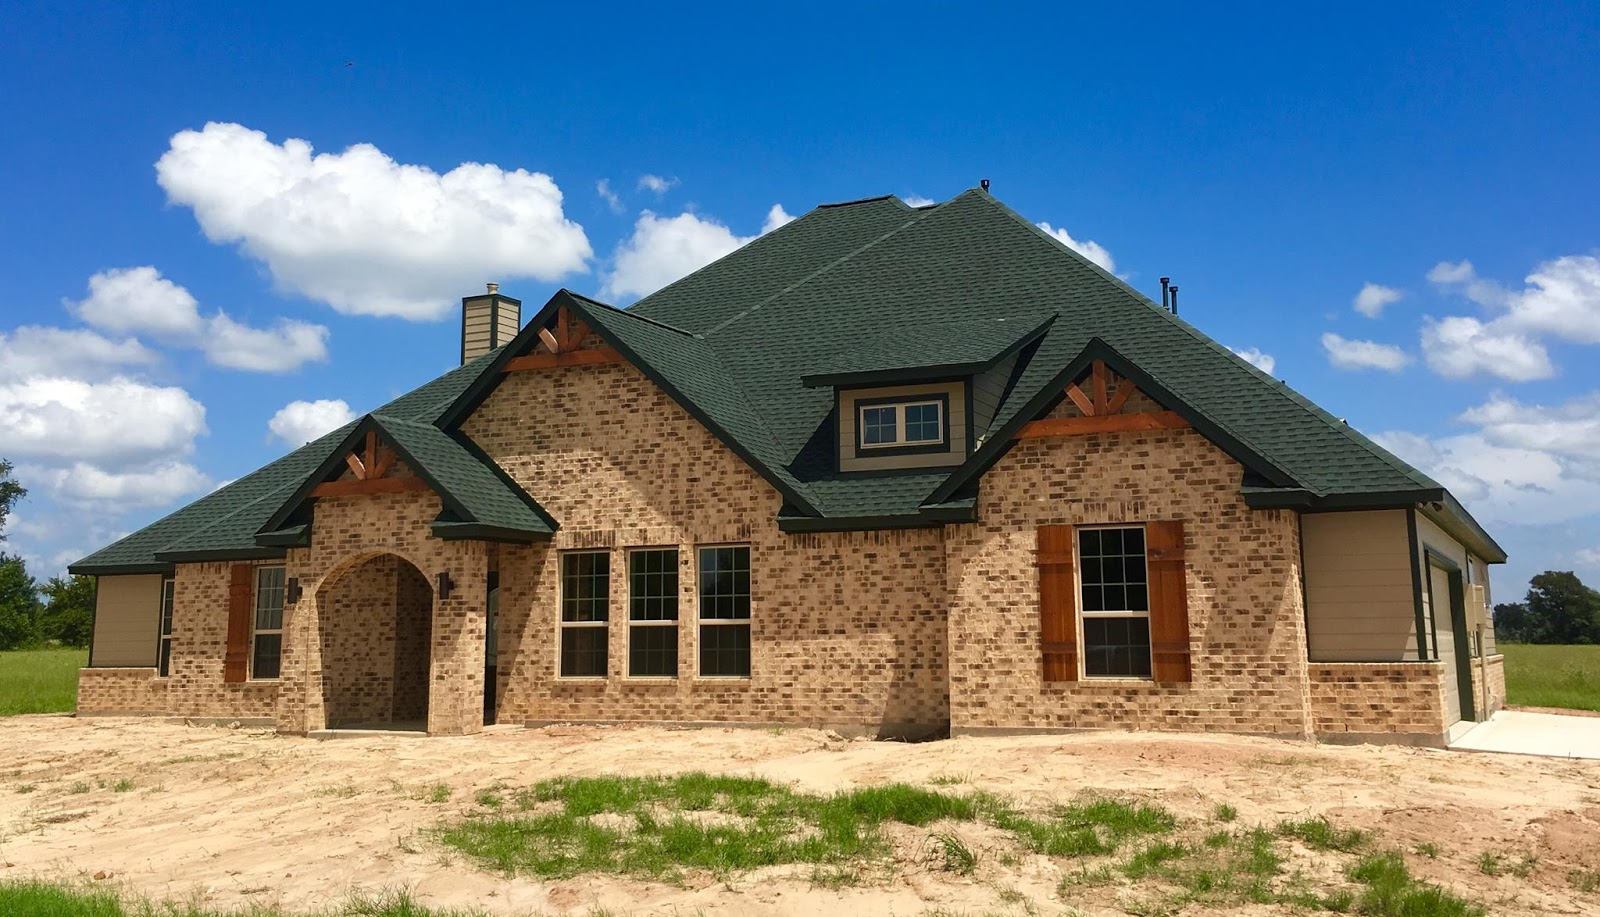 Kurk custom homes design and build blog eyes of the home for Types of homes to build